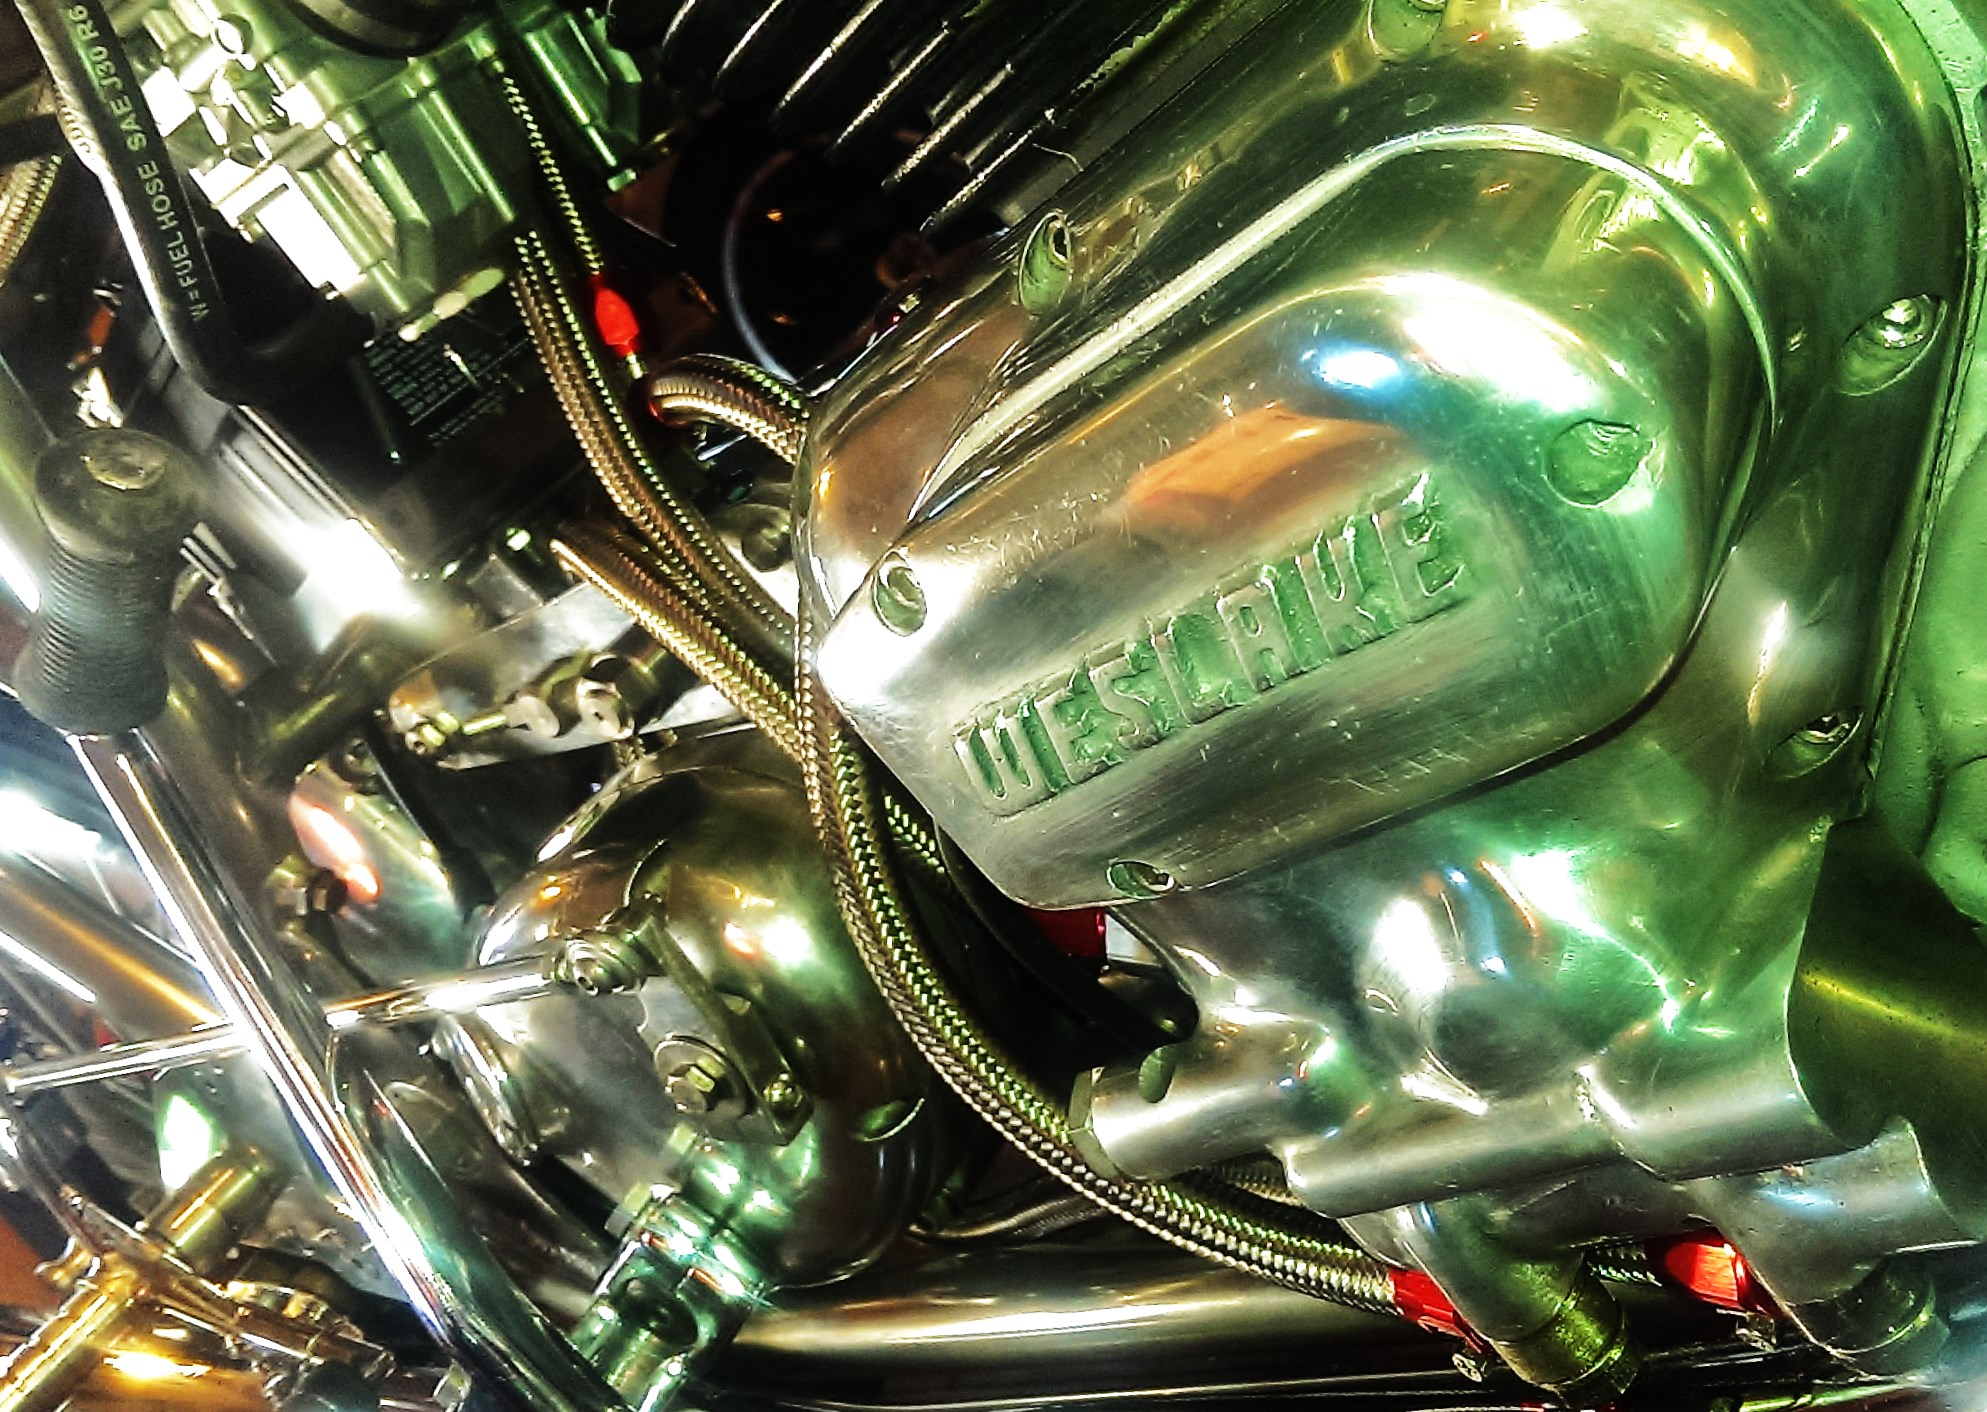 Rickman Weslake 750, close to being finished.